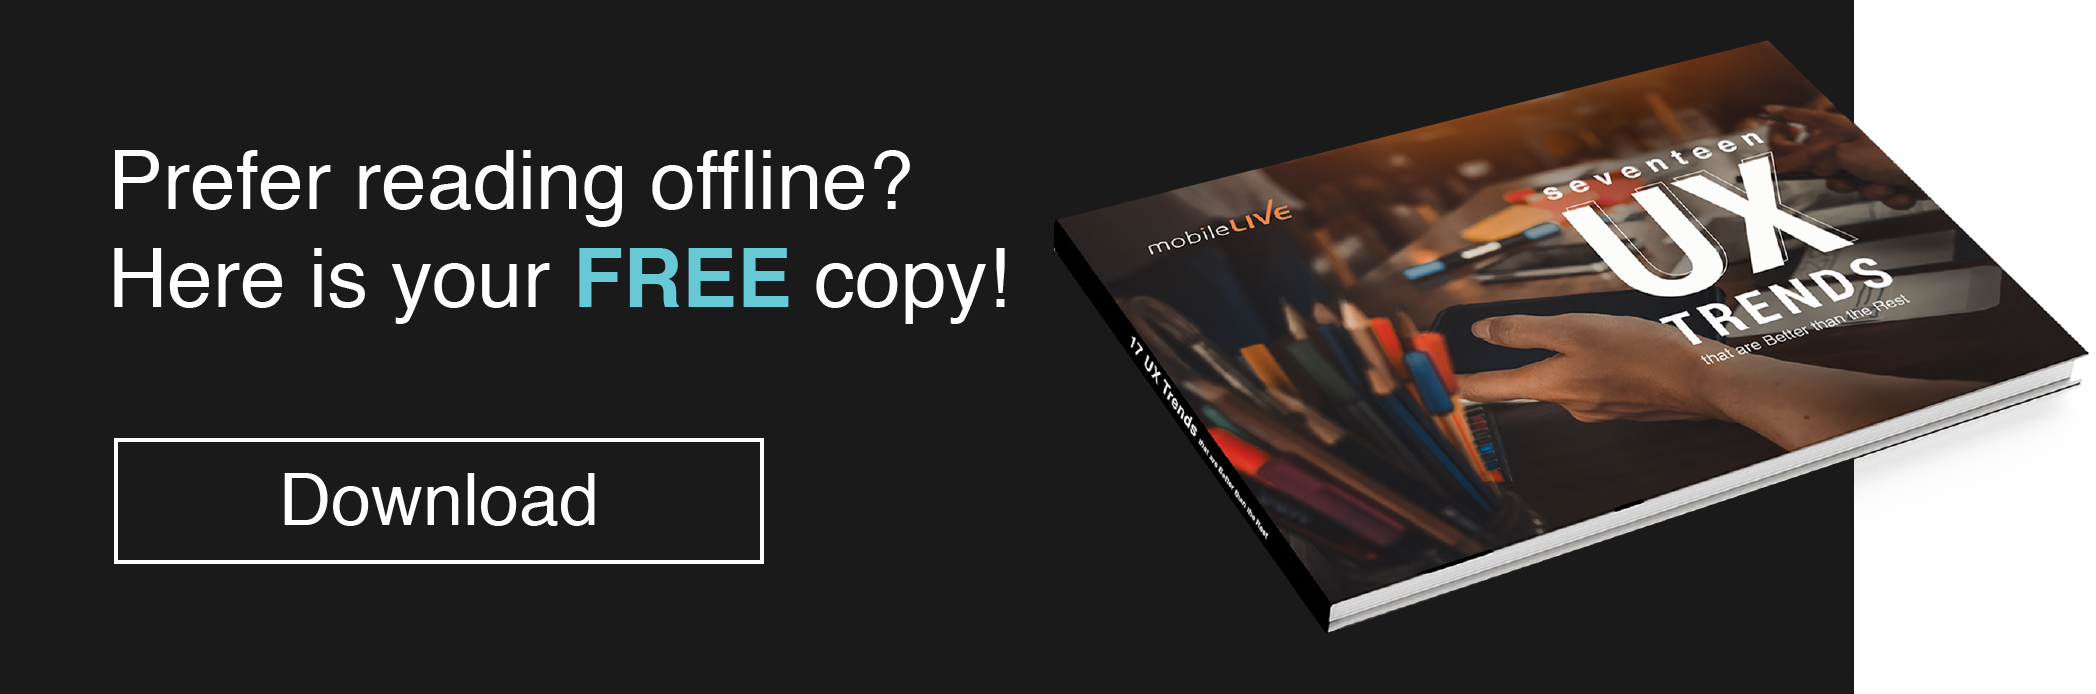 Prefer reading offline? Here is your FREE copy!